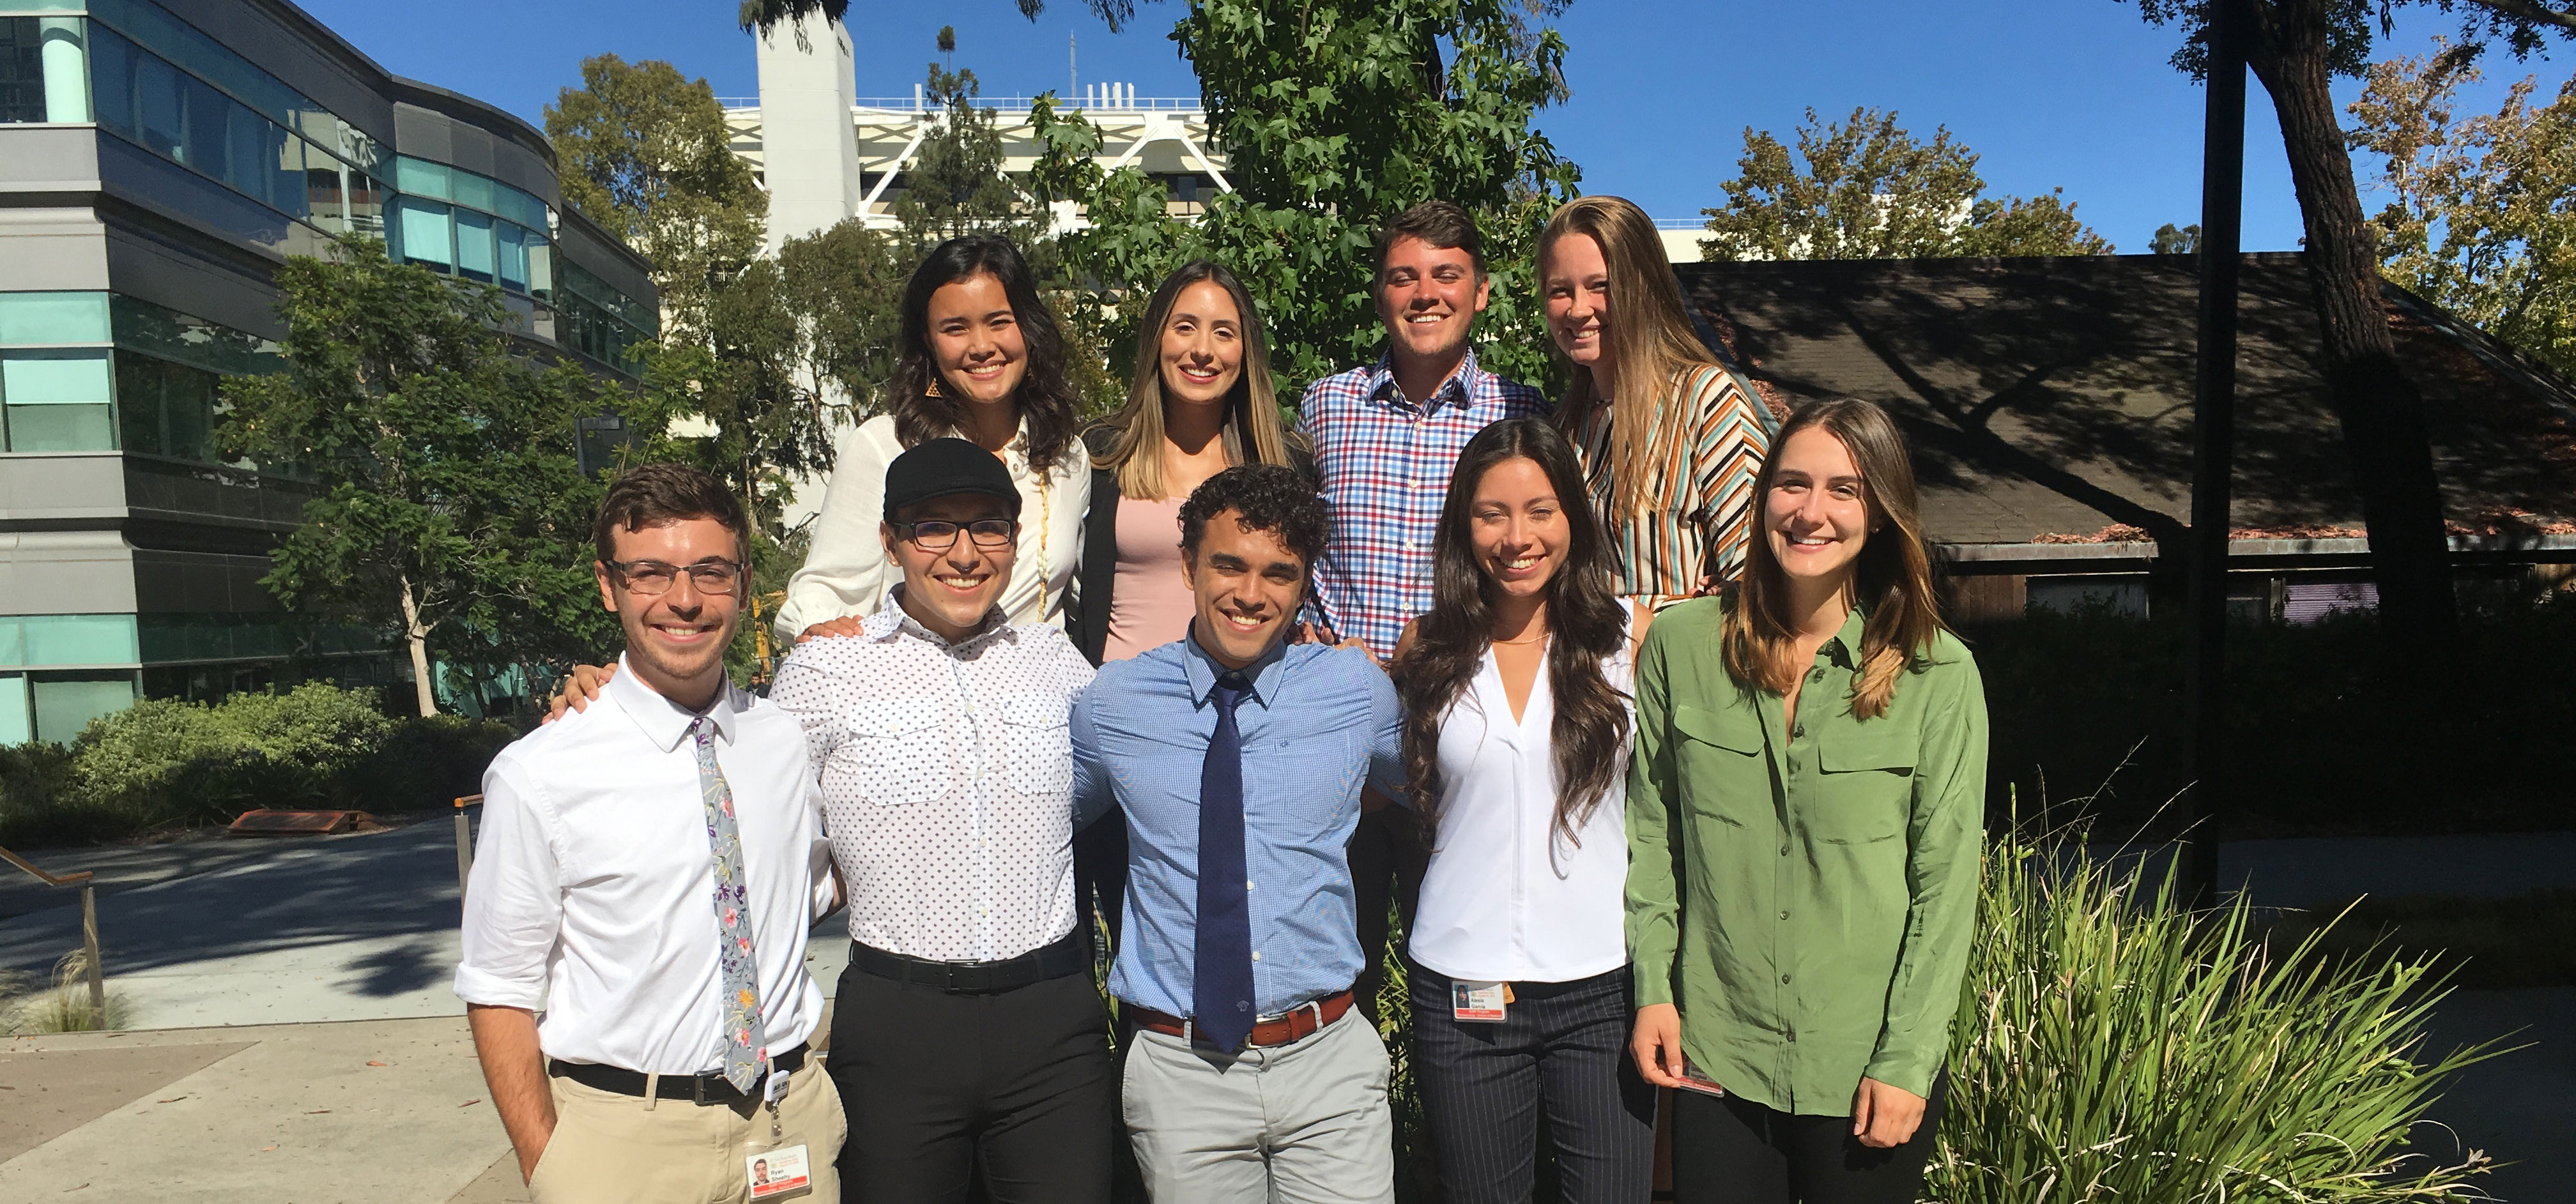 (2019 Pharmacology SURF Participants Undergraduate students from Sonoma State University, San Diego City College, Pomona College